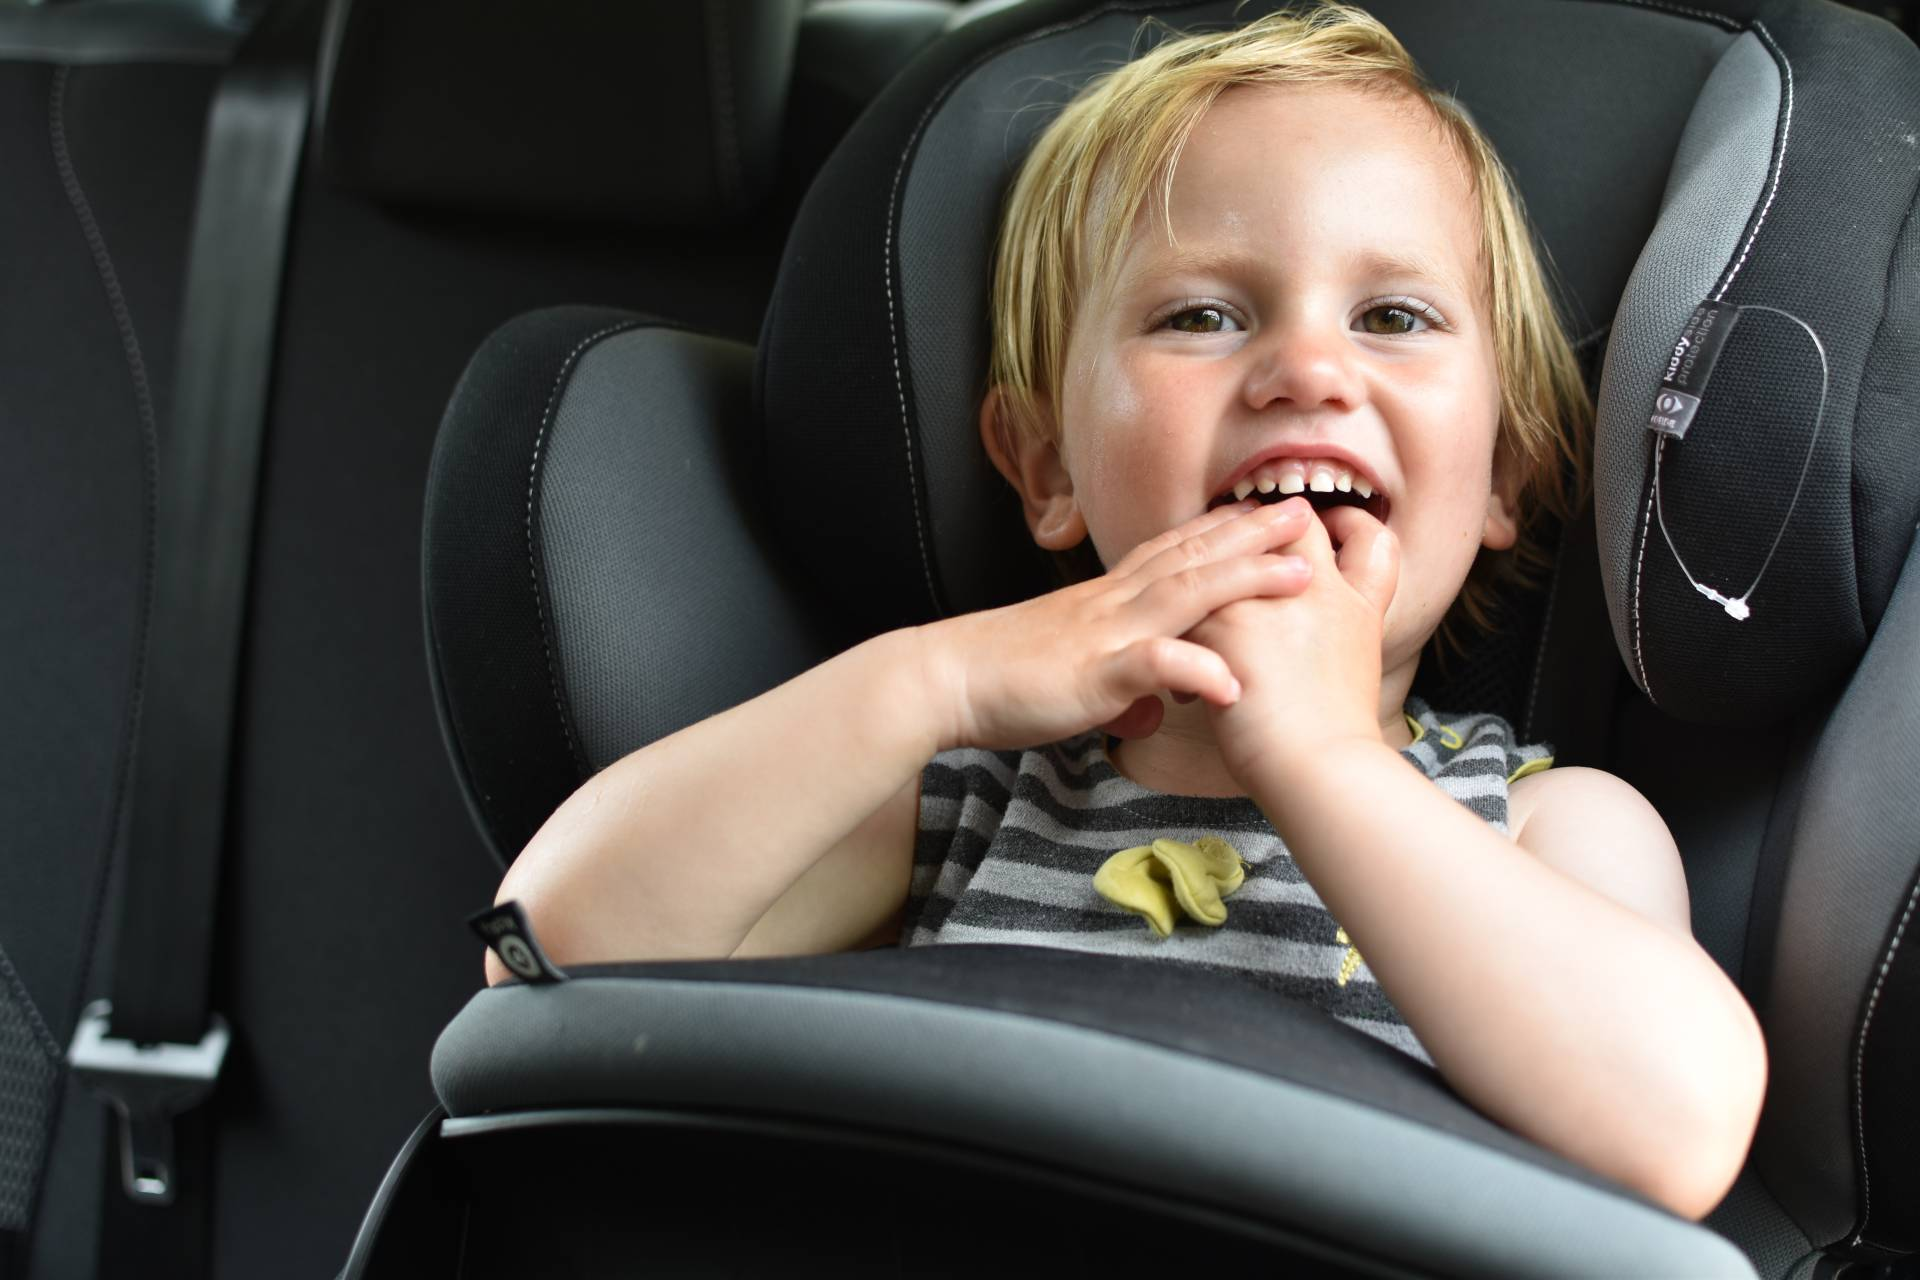 Do you know the real dangers of forward facing car seats? I't's difficult though when your baby or toddler doesn't like rear facing so I've tested out an impact shield car seat which seemed a good alternative.